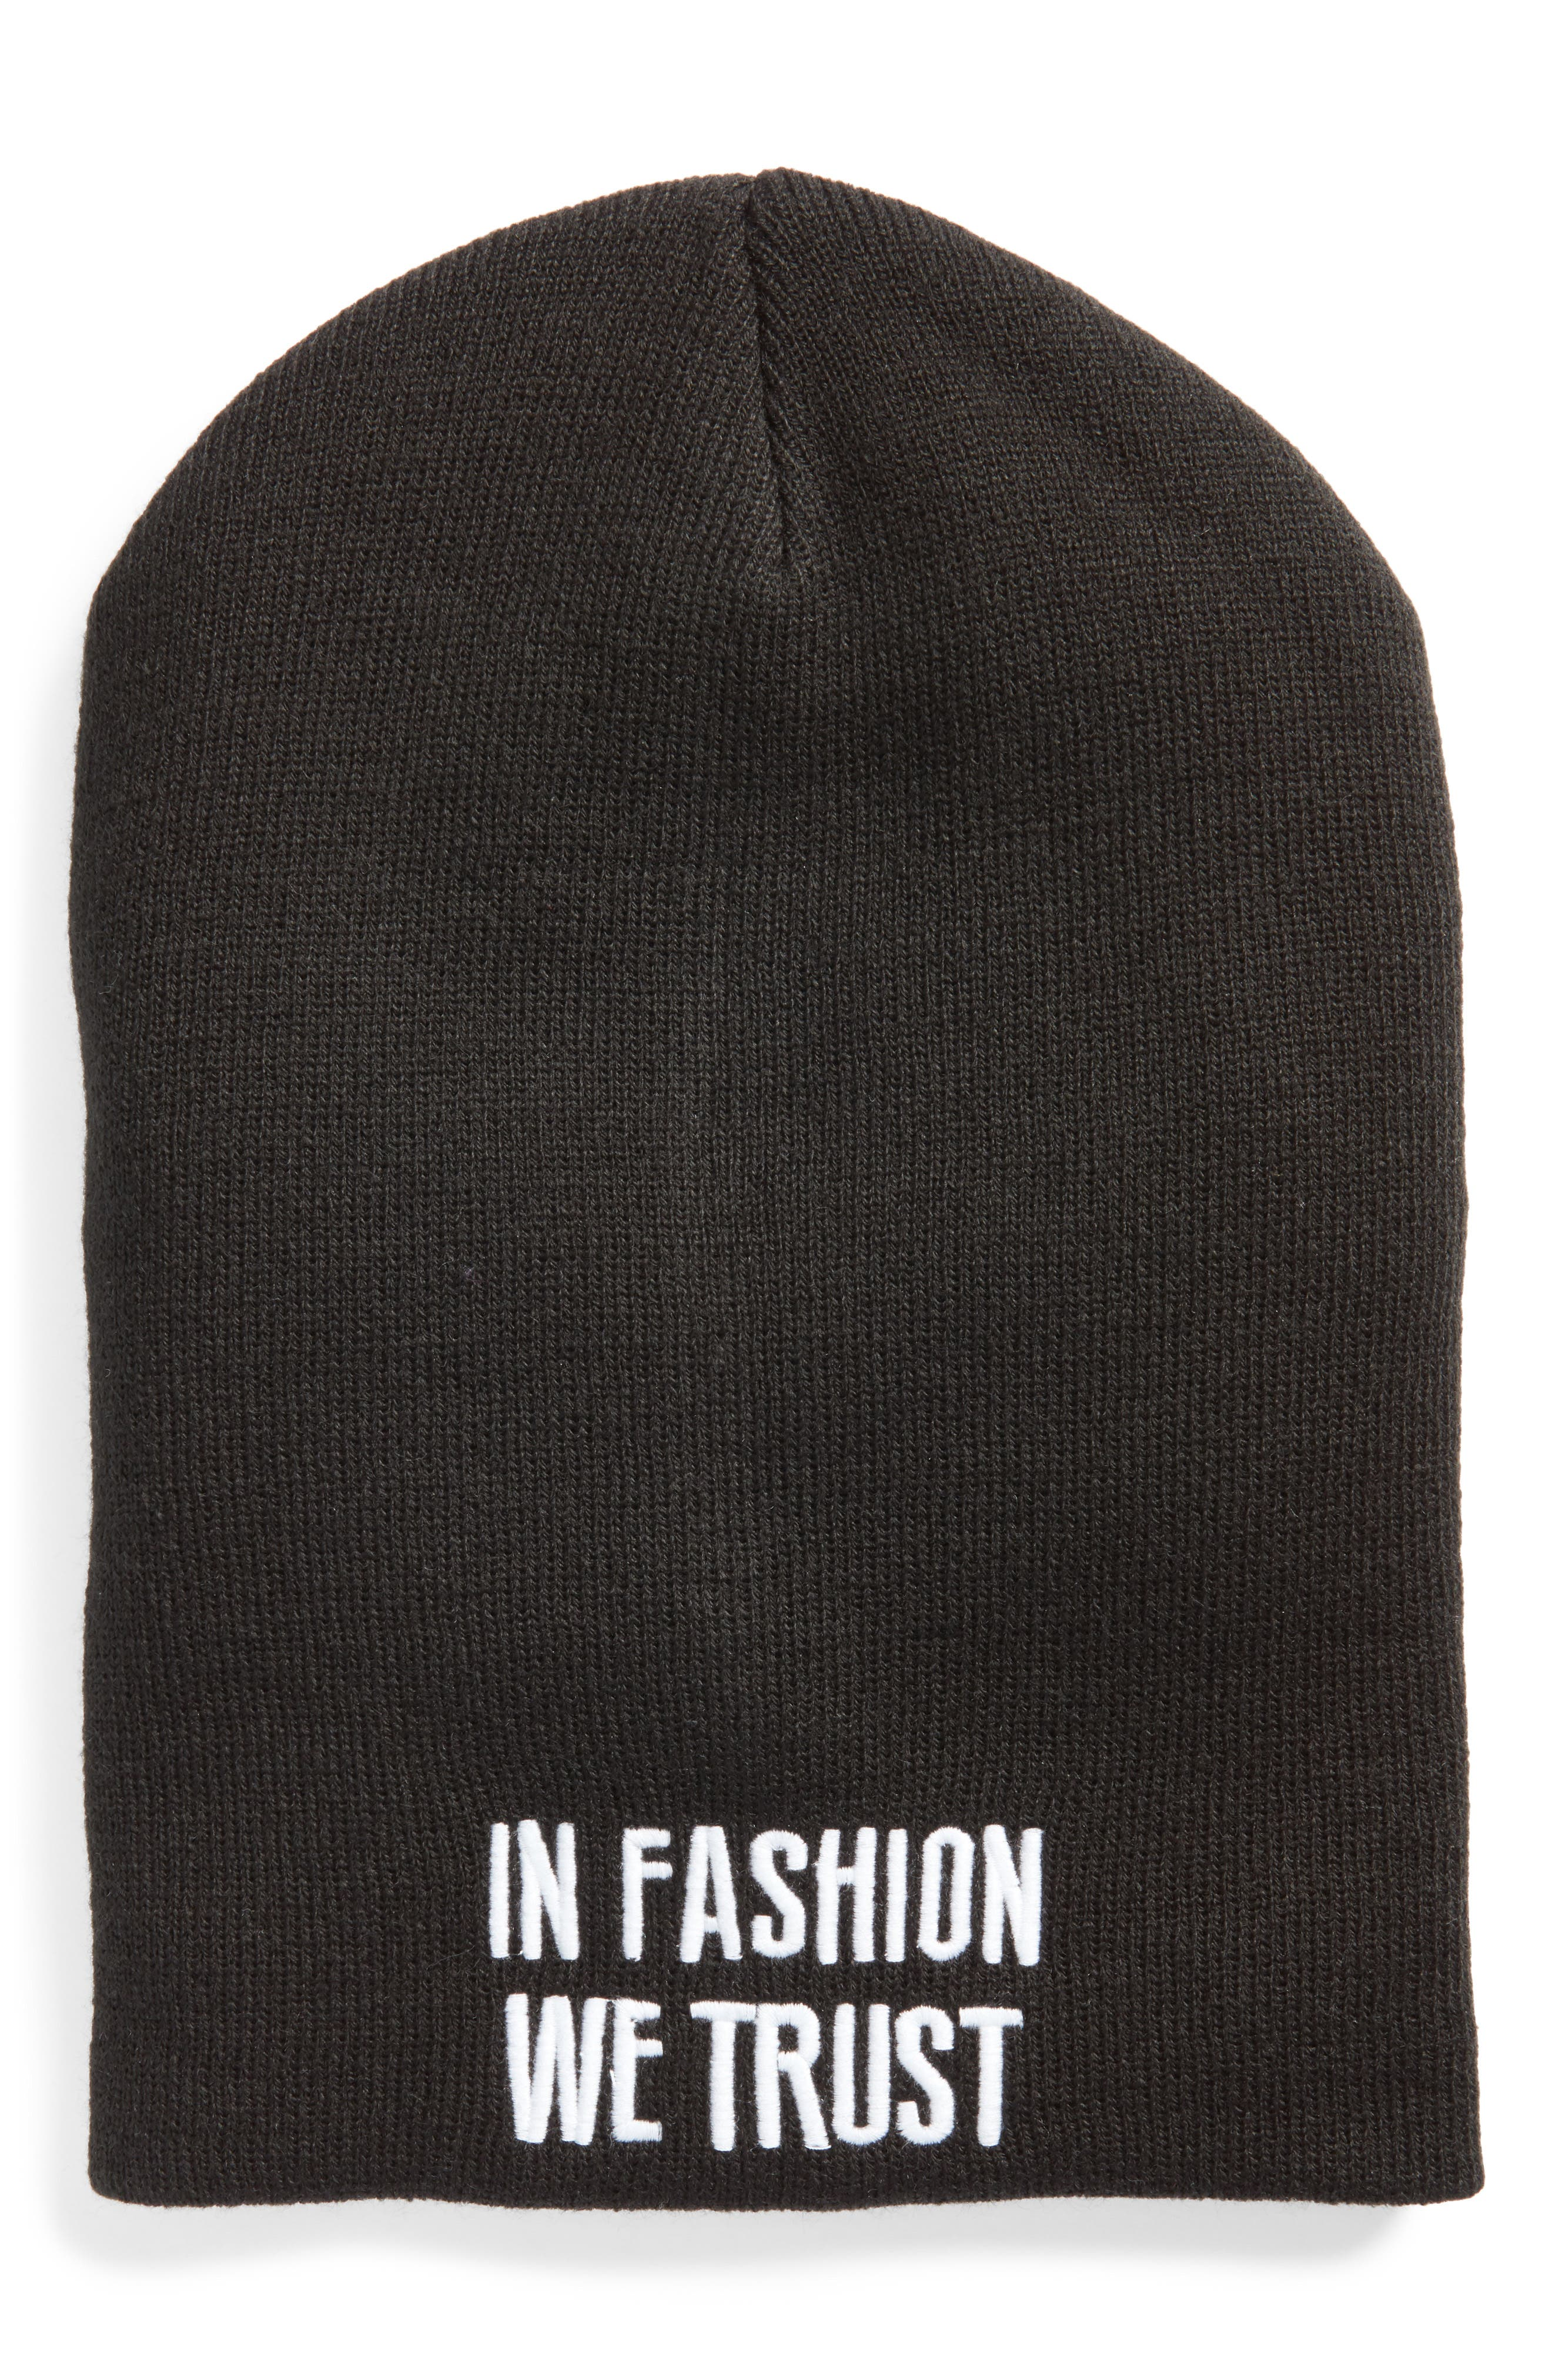 In Fashion We Trust Beanie,                         Main,                         color, Black